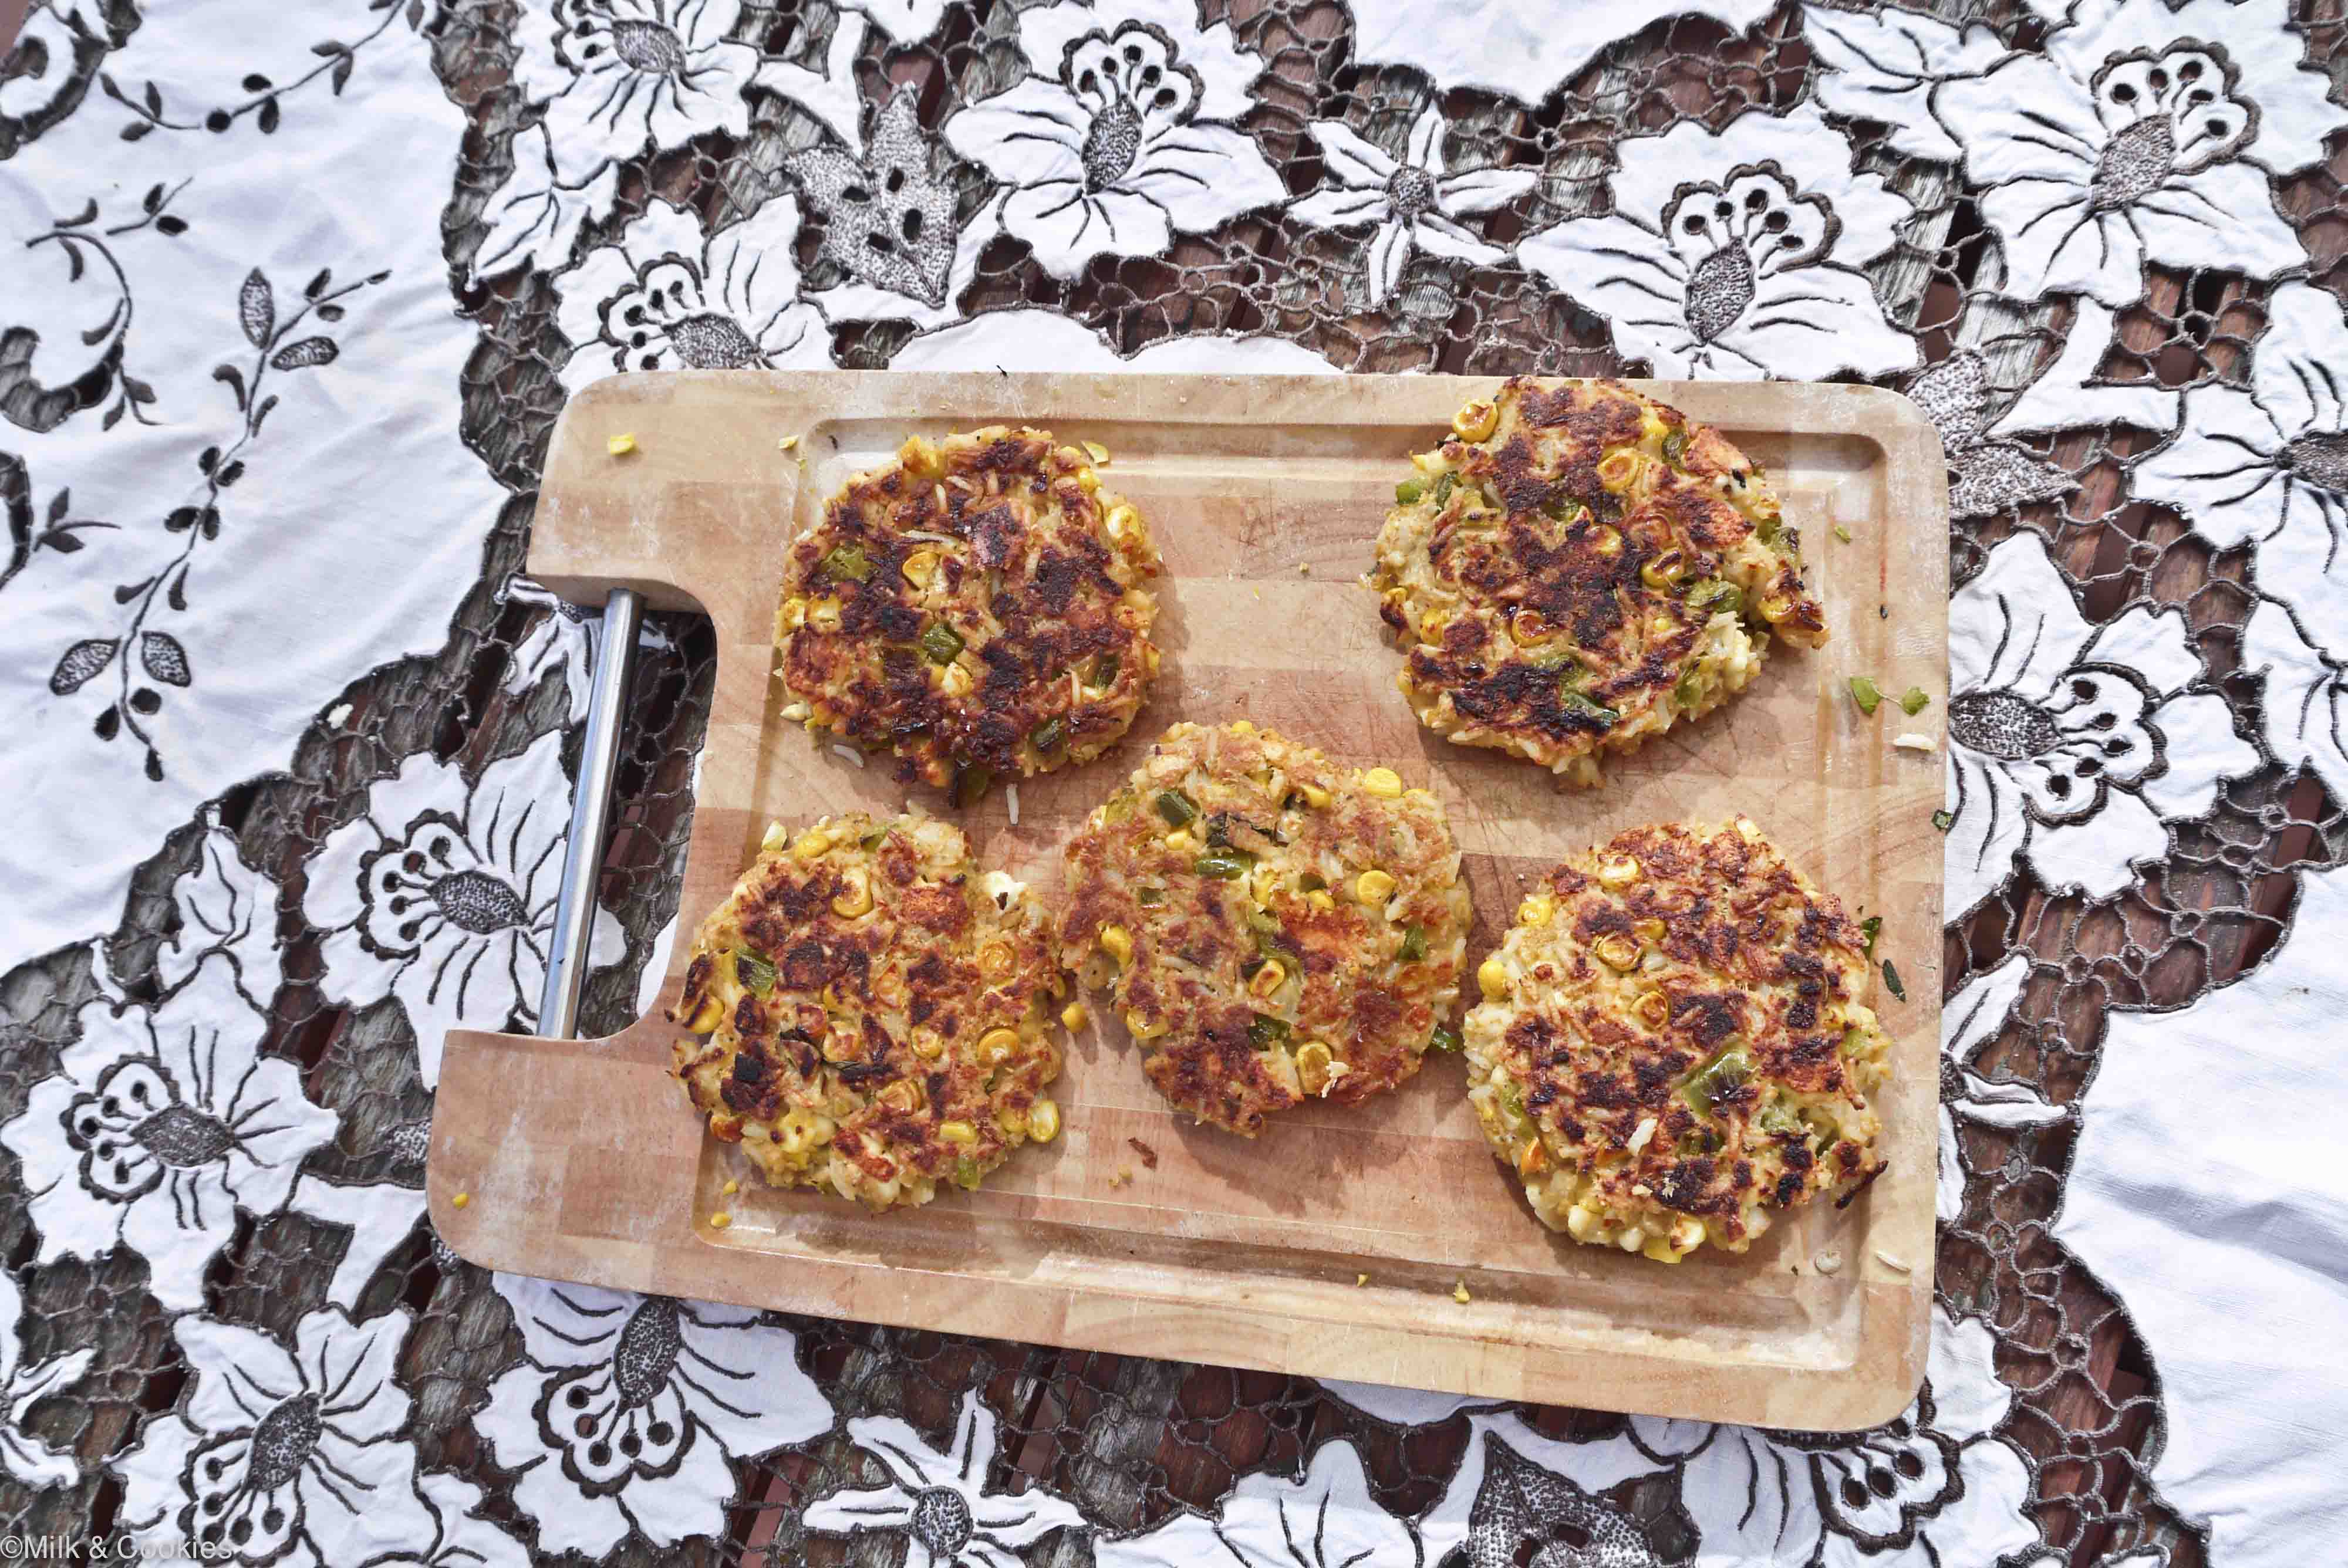 Veggie burger patty recipe | Milk and Cookies